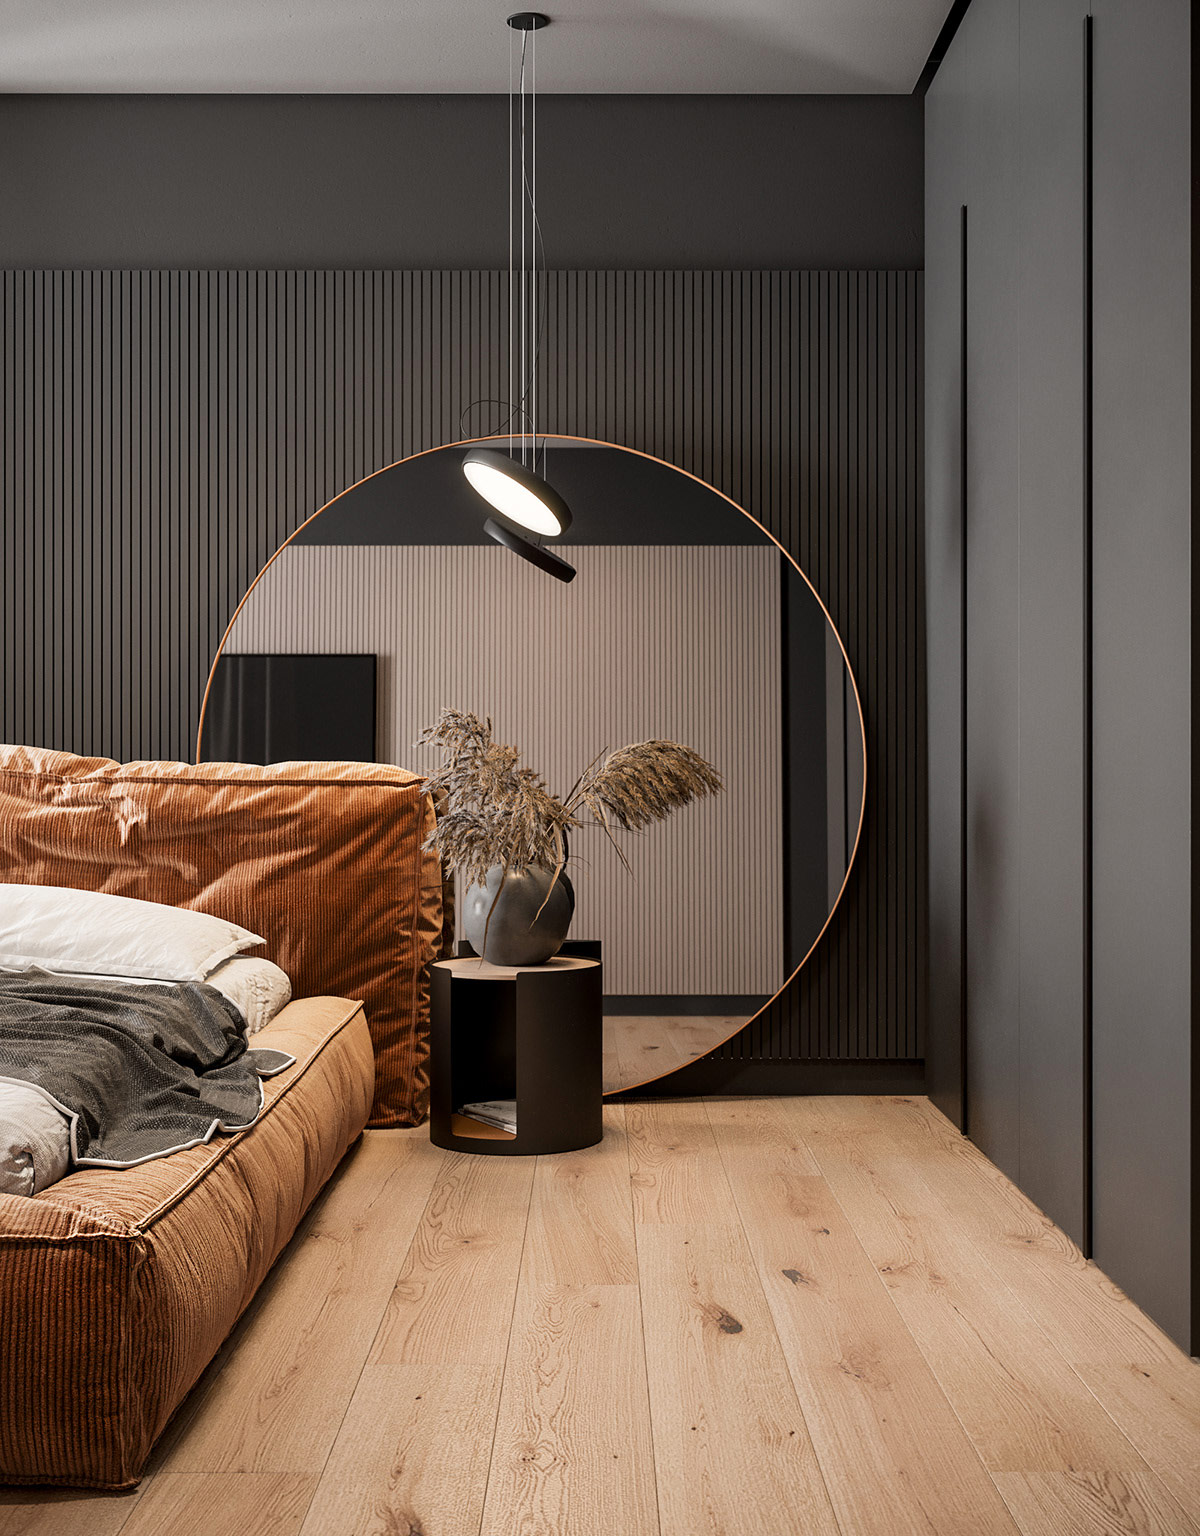 decorative-wall-mirror.jpg